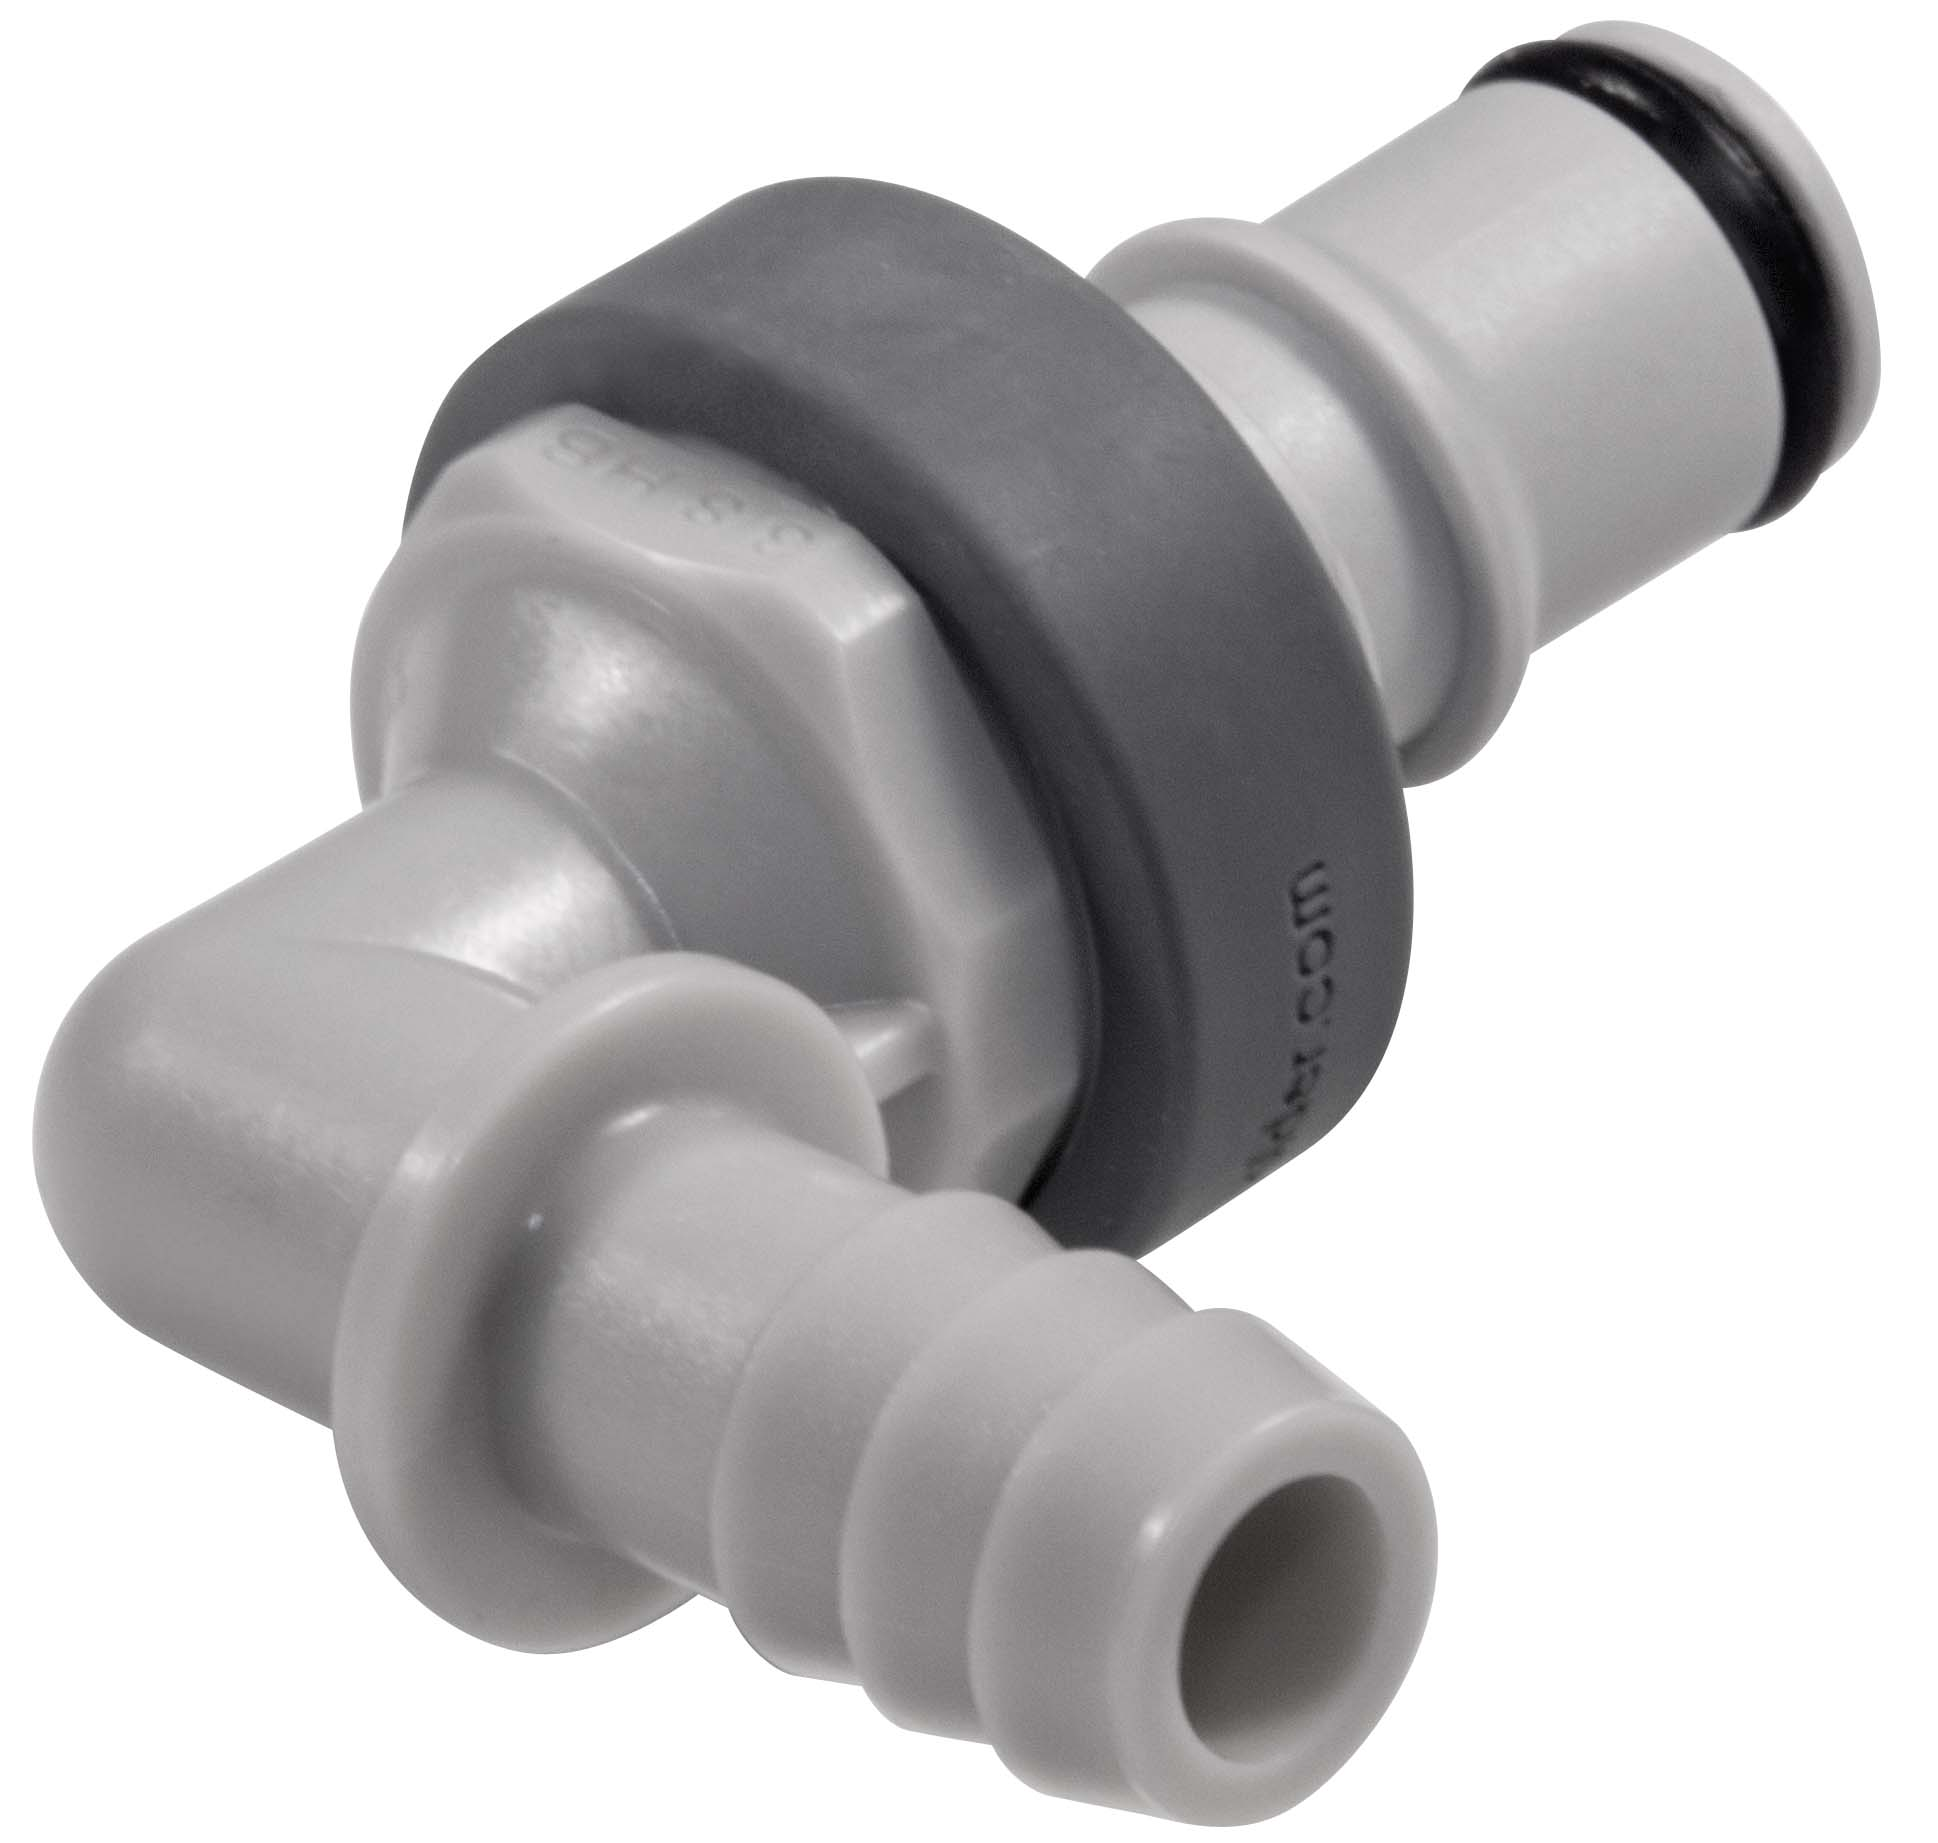 3/8 Hose Barb Valved Elbow Coupling Insert